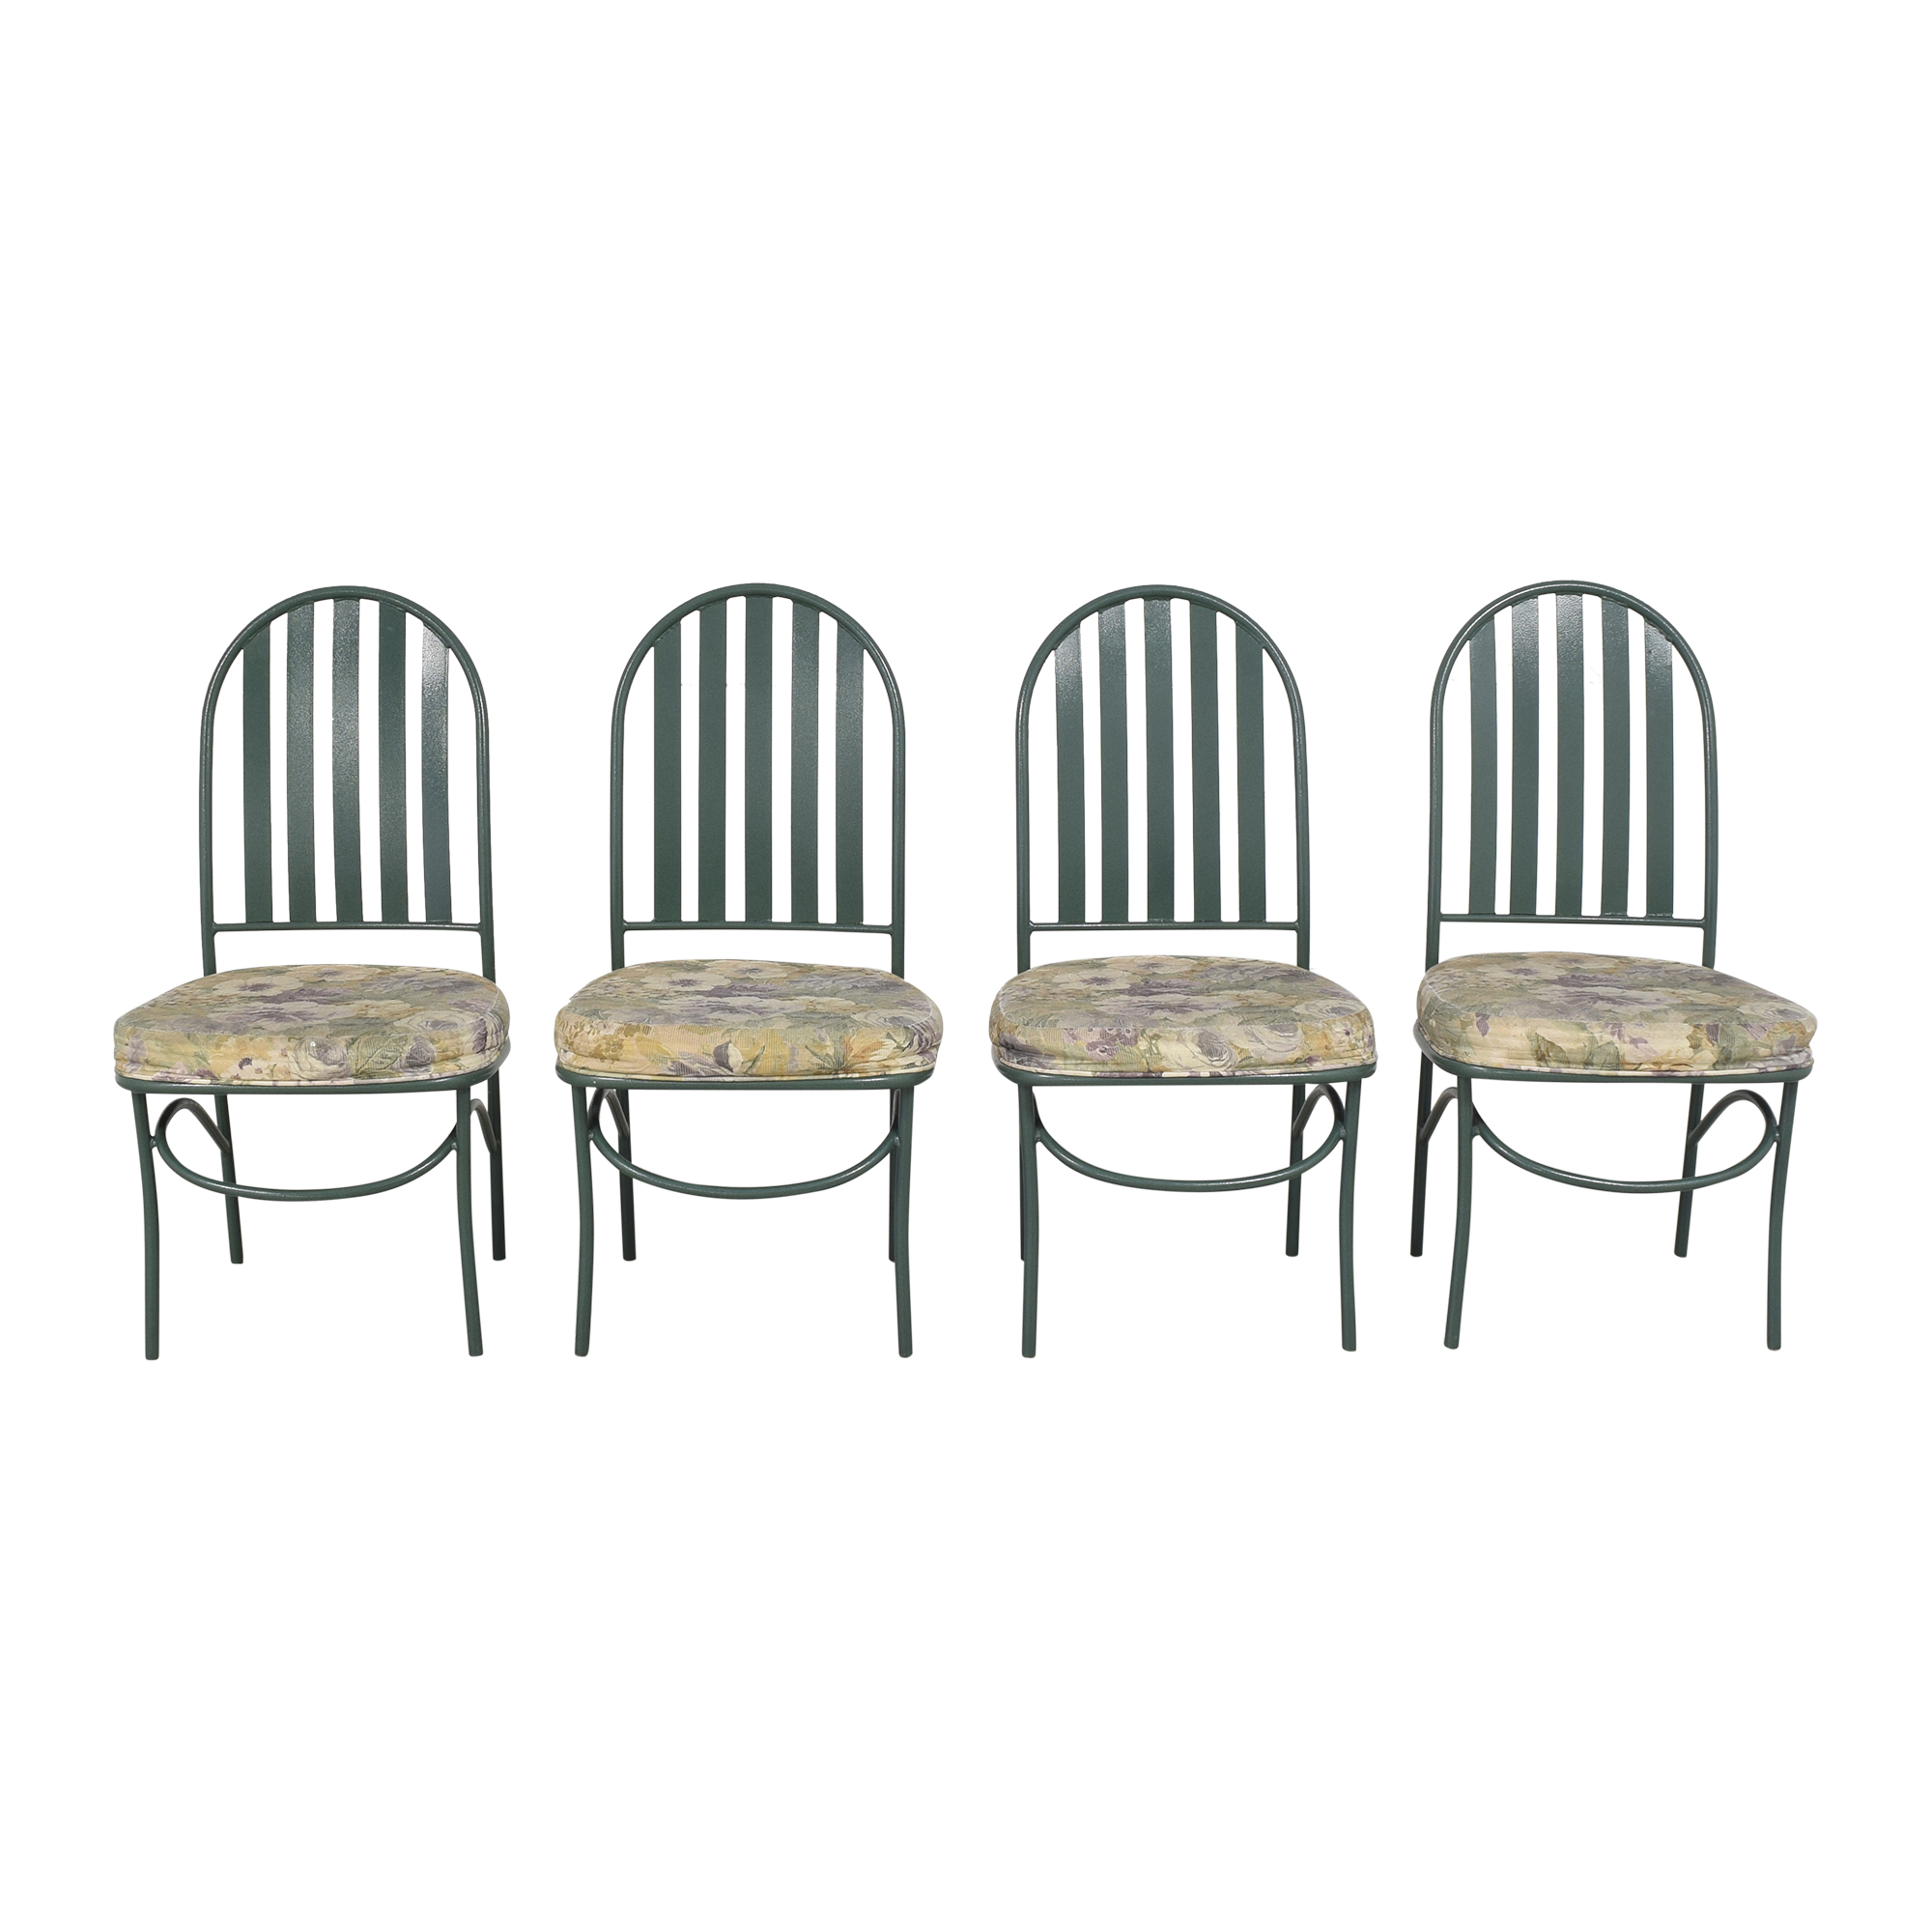 Floral Dining Chairs ma